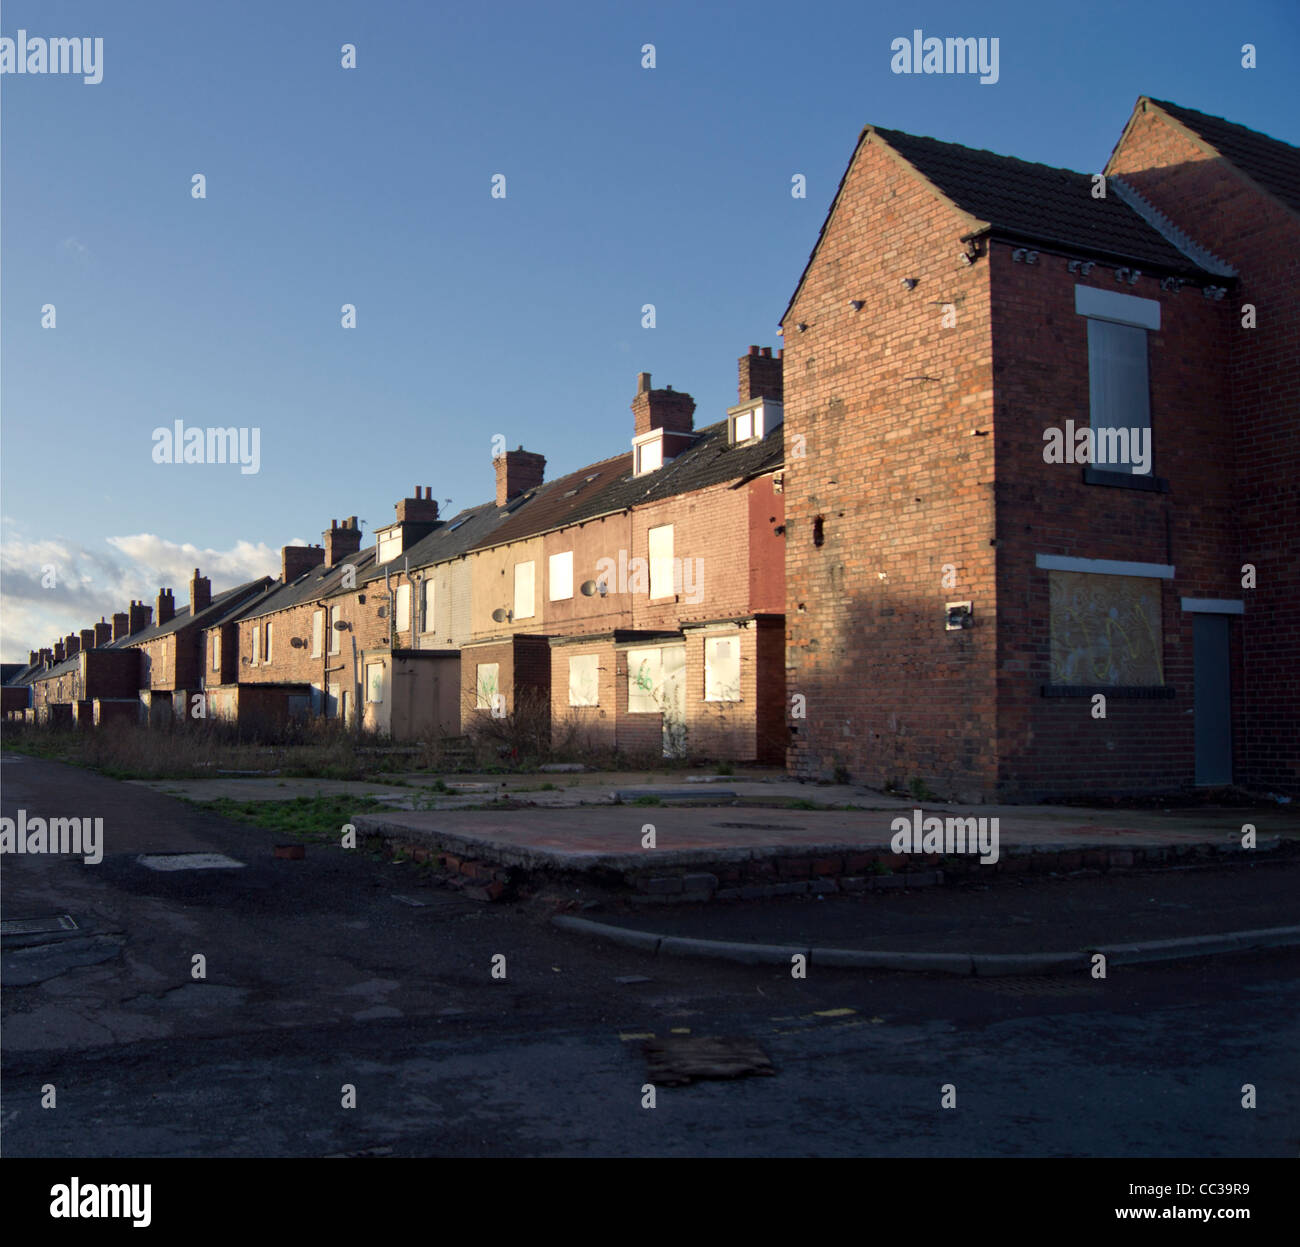 Houses In The Old South Yorkshire Mining Town Of